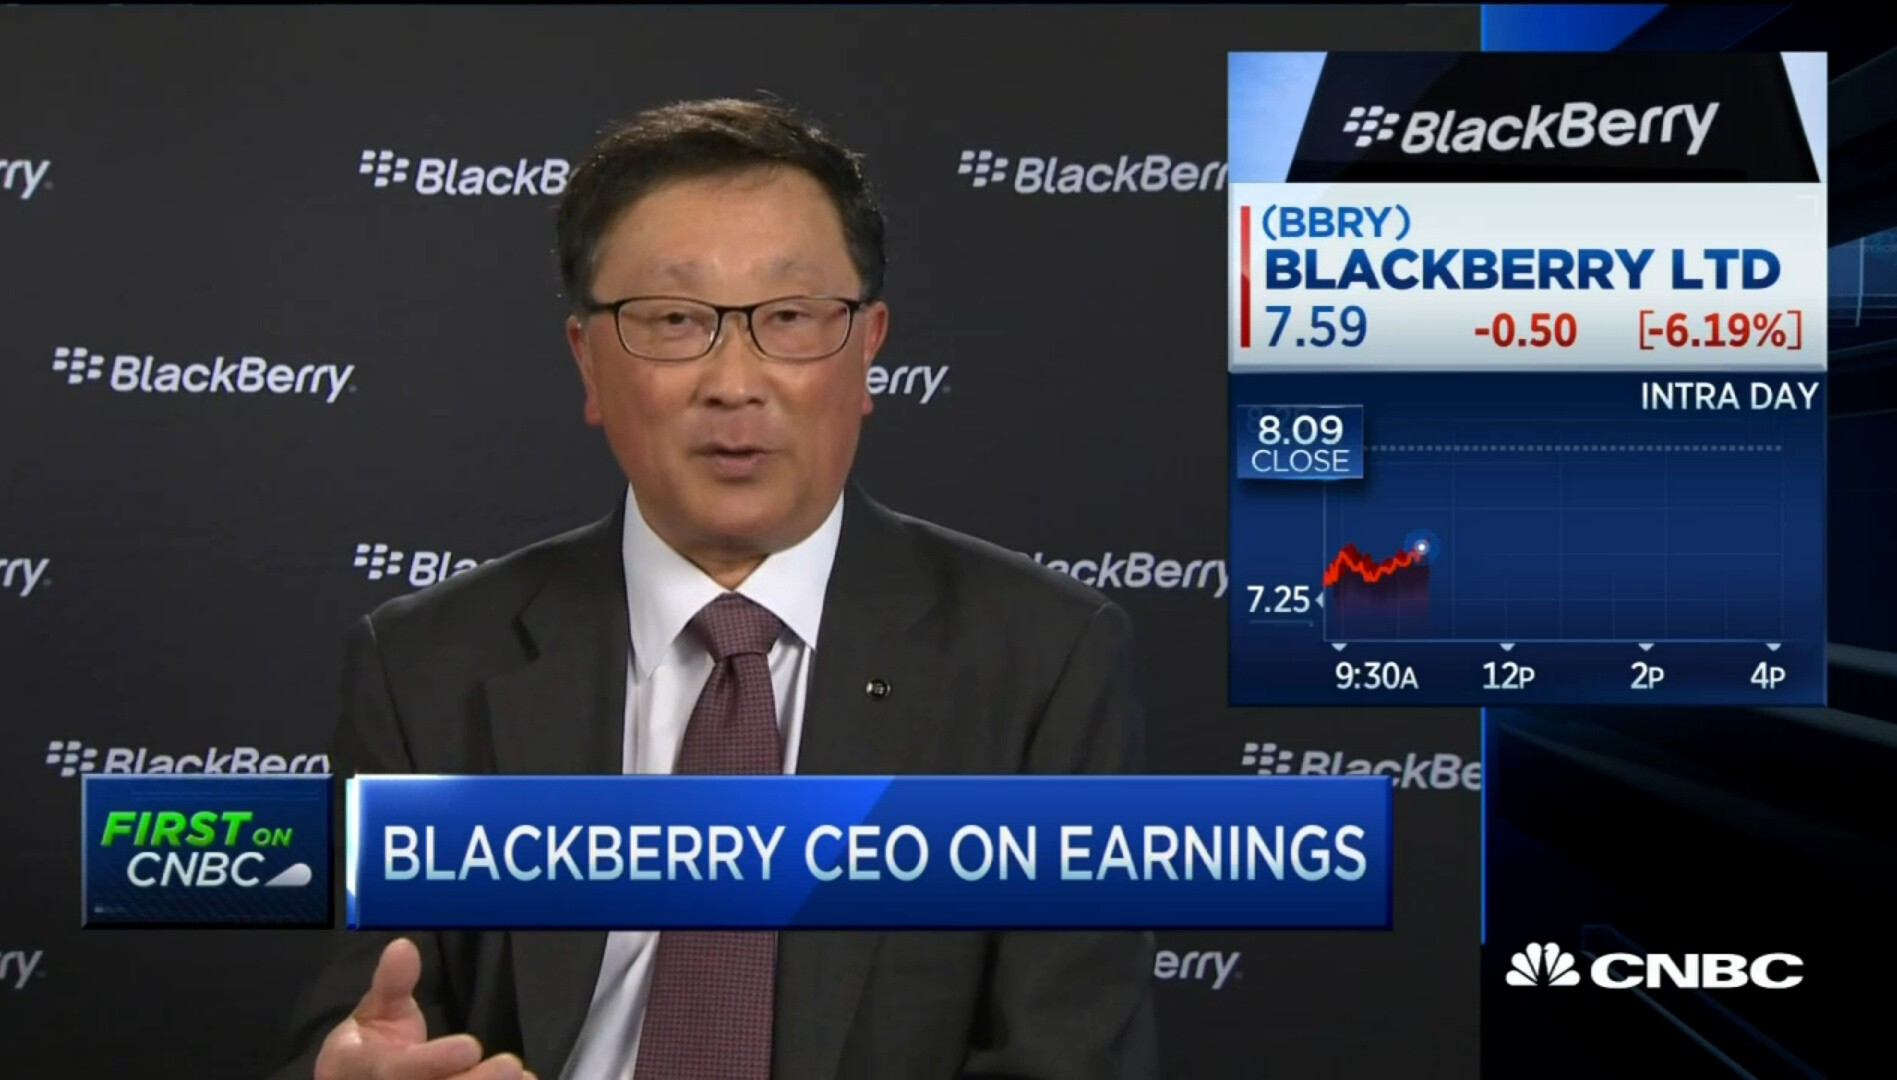 John Chen: Software done well, hardware underperformed